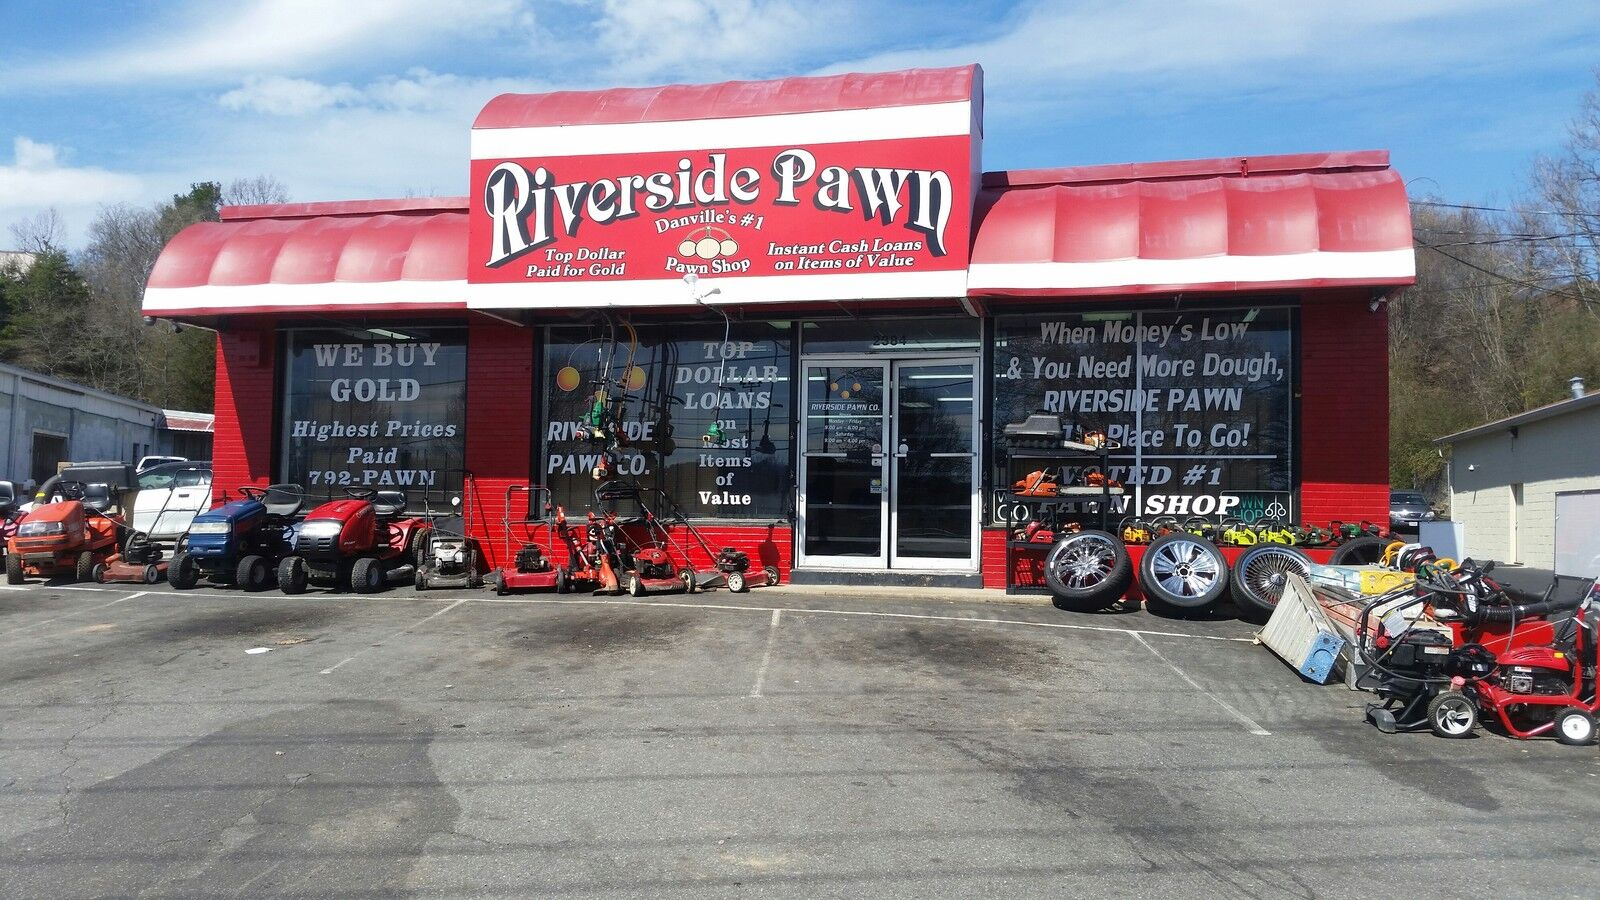 Riverside Pawn